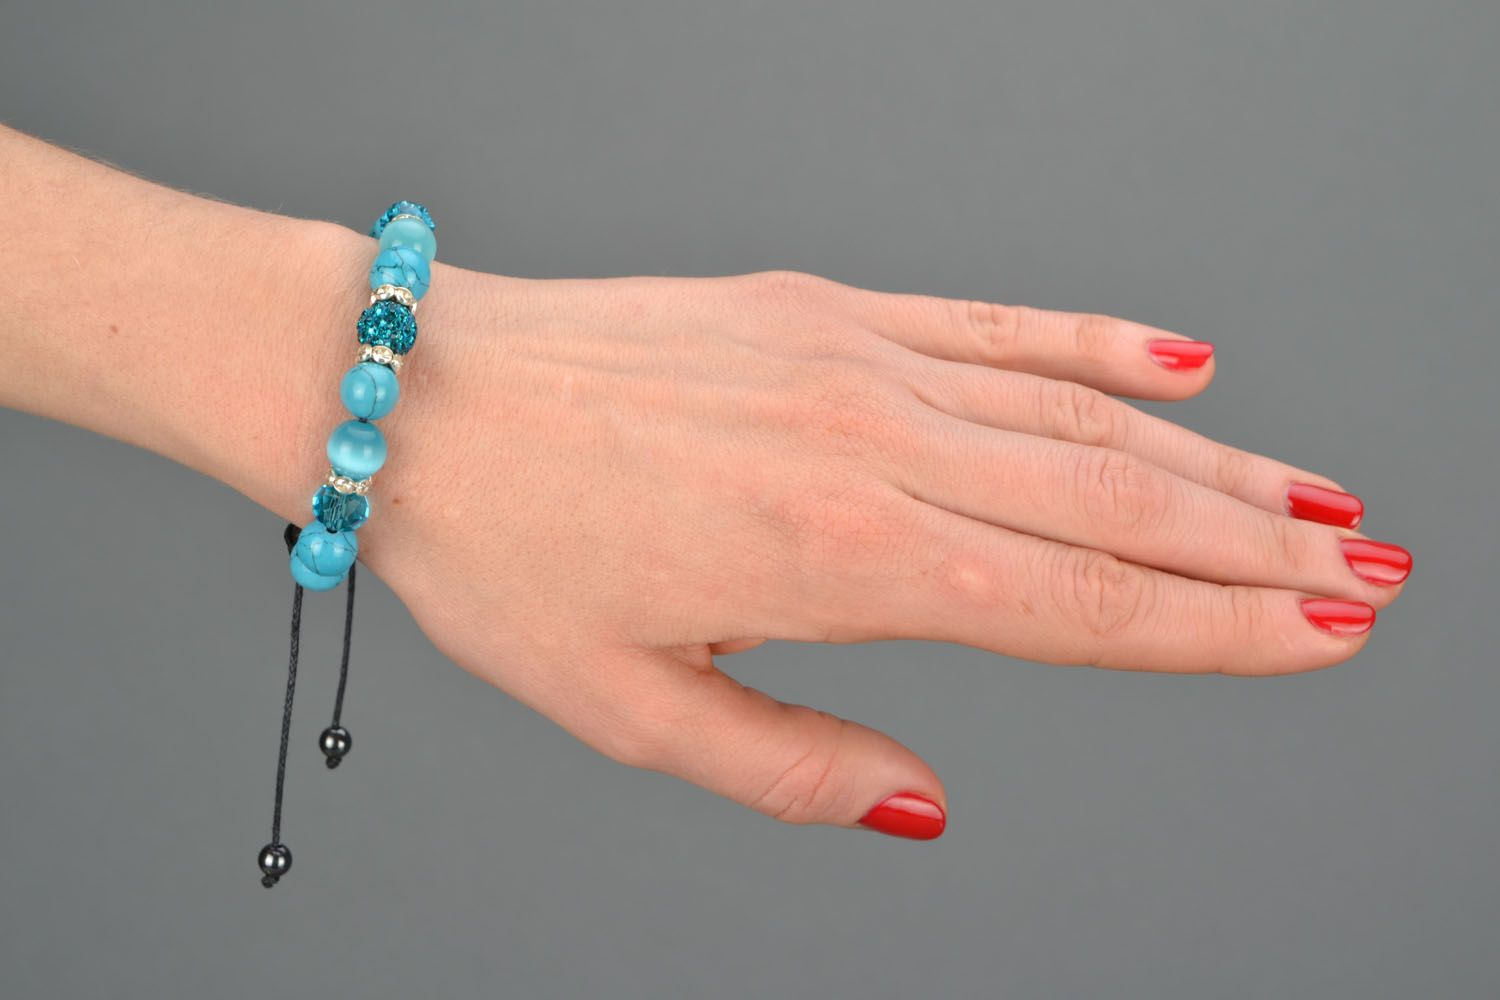 Homemade bracelet with natural stones Blue Sky photo 1